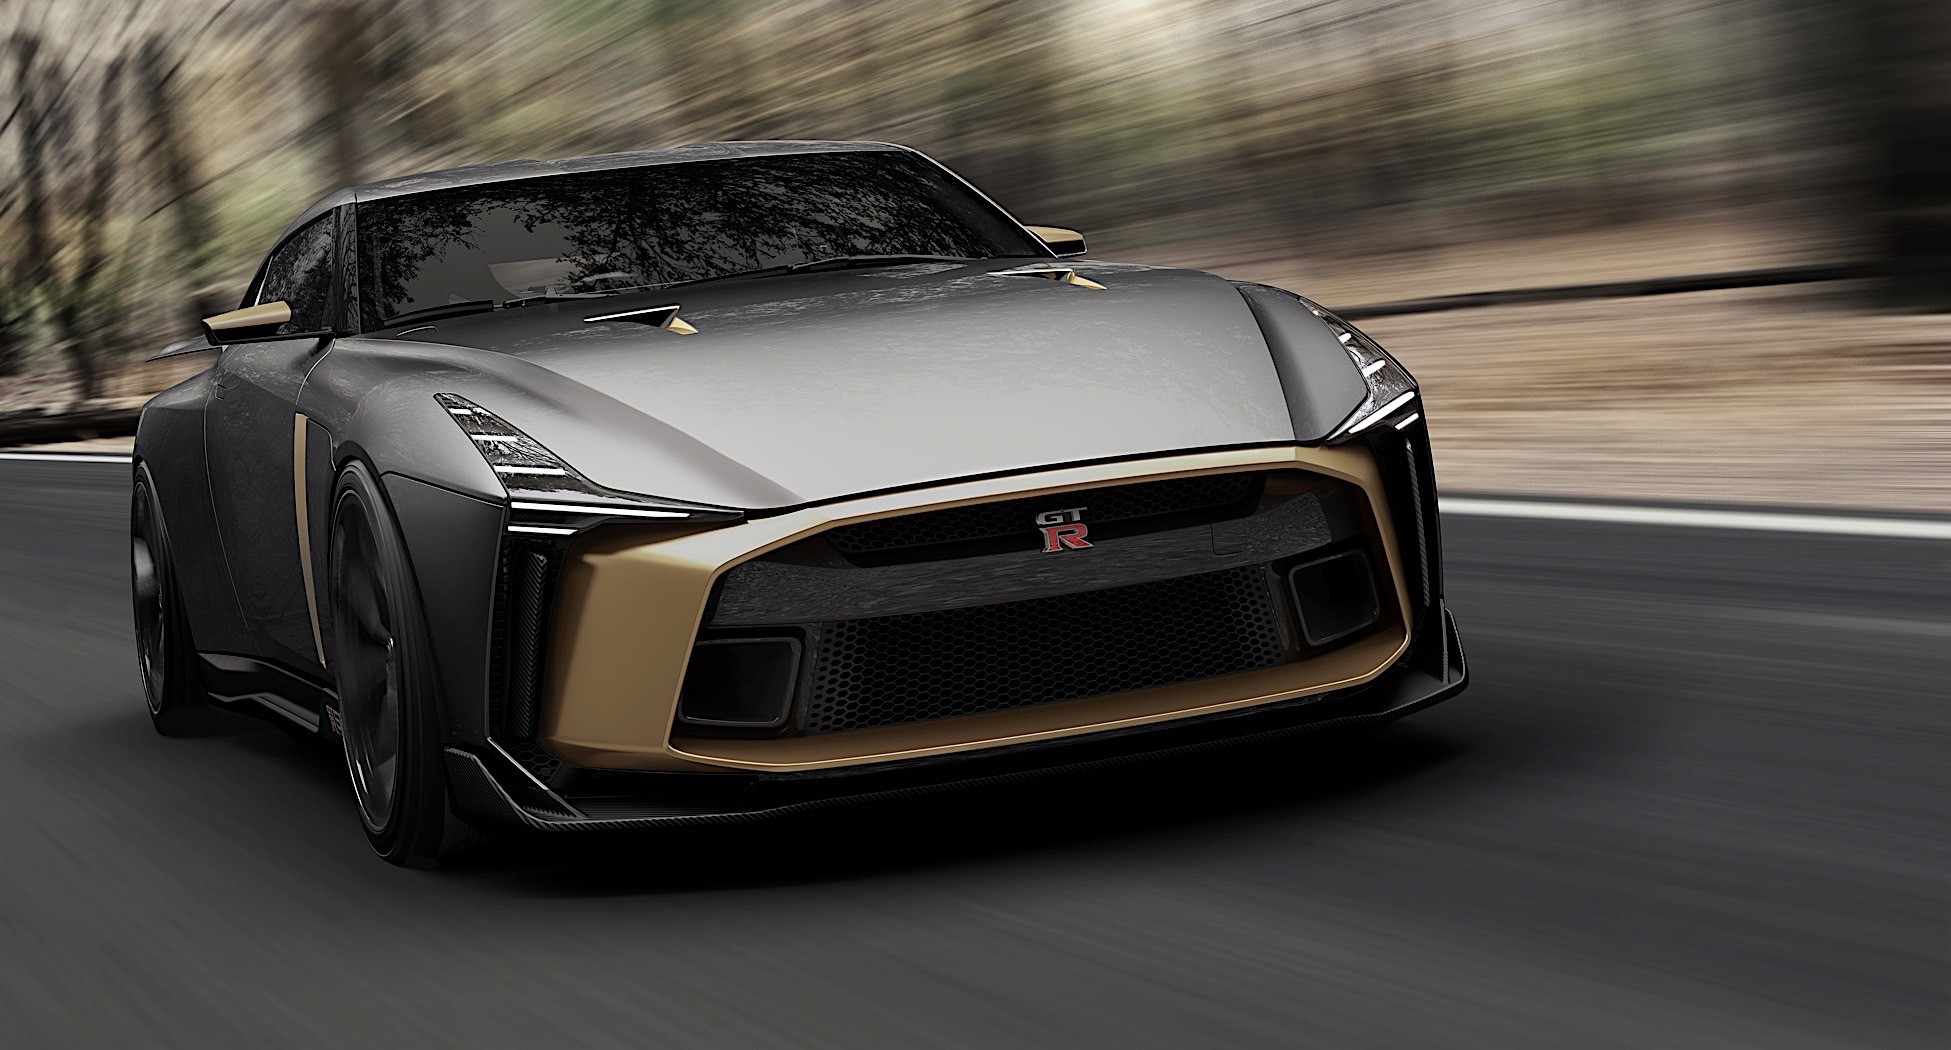 You can now place your order for ItalDesign's Nissan GT-R50